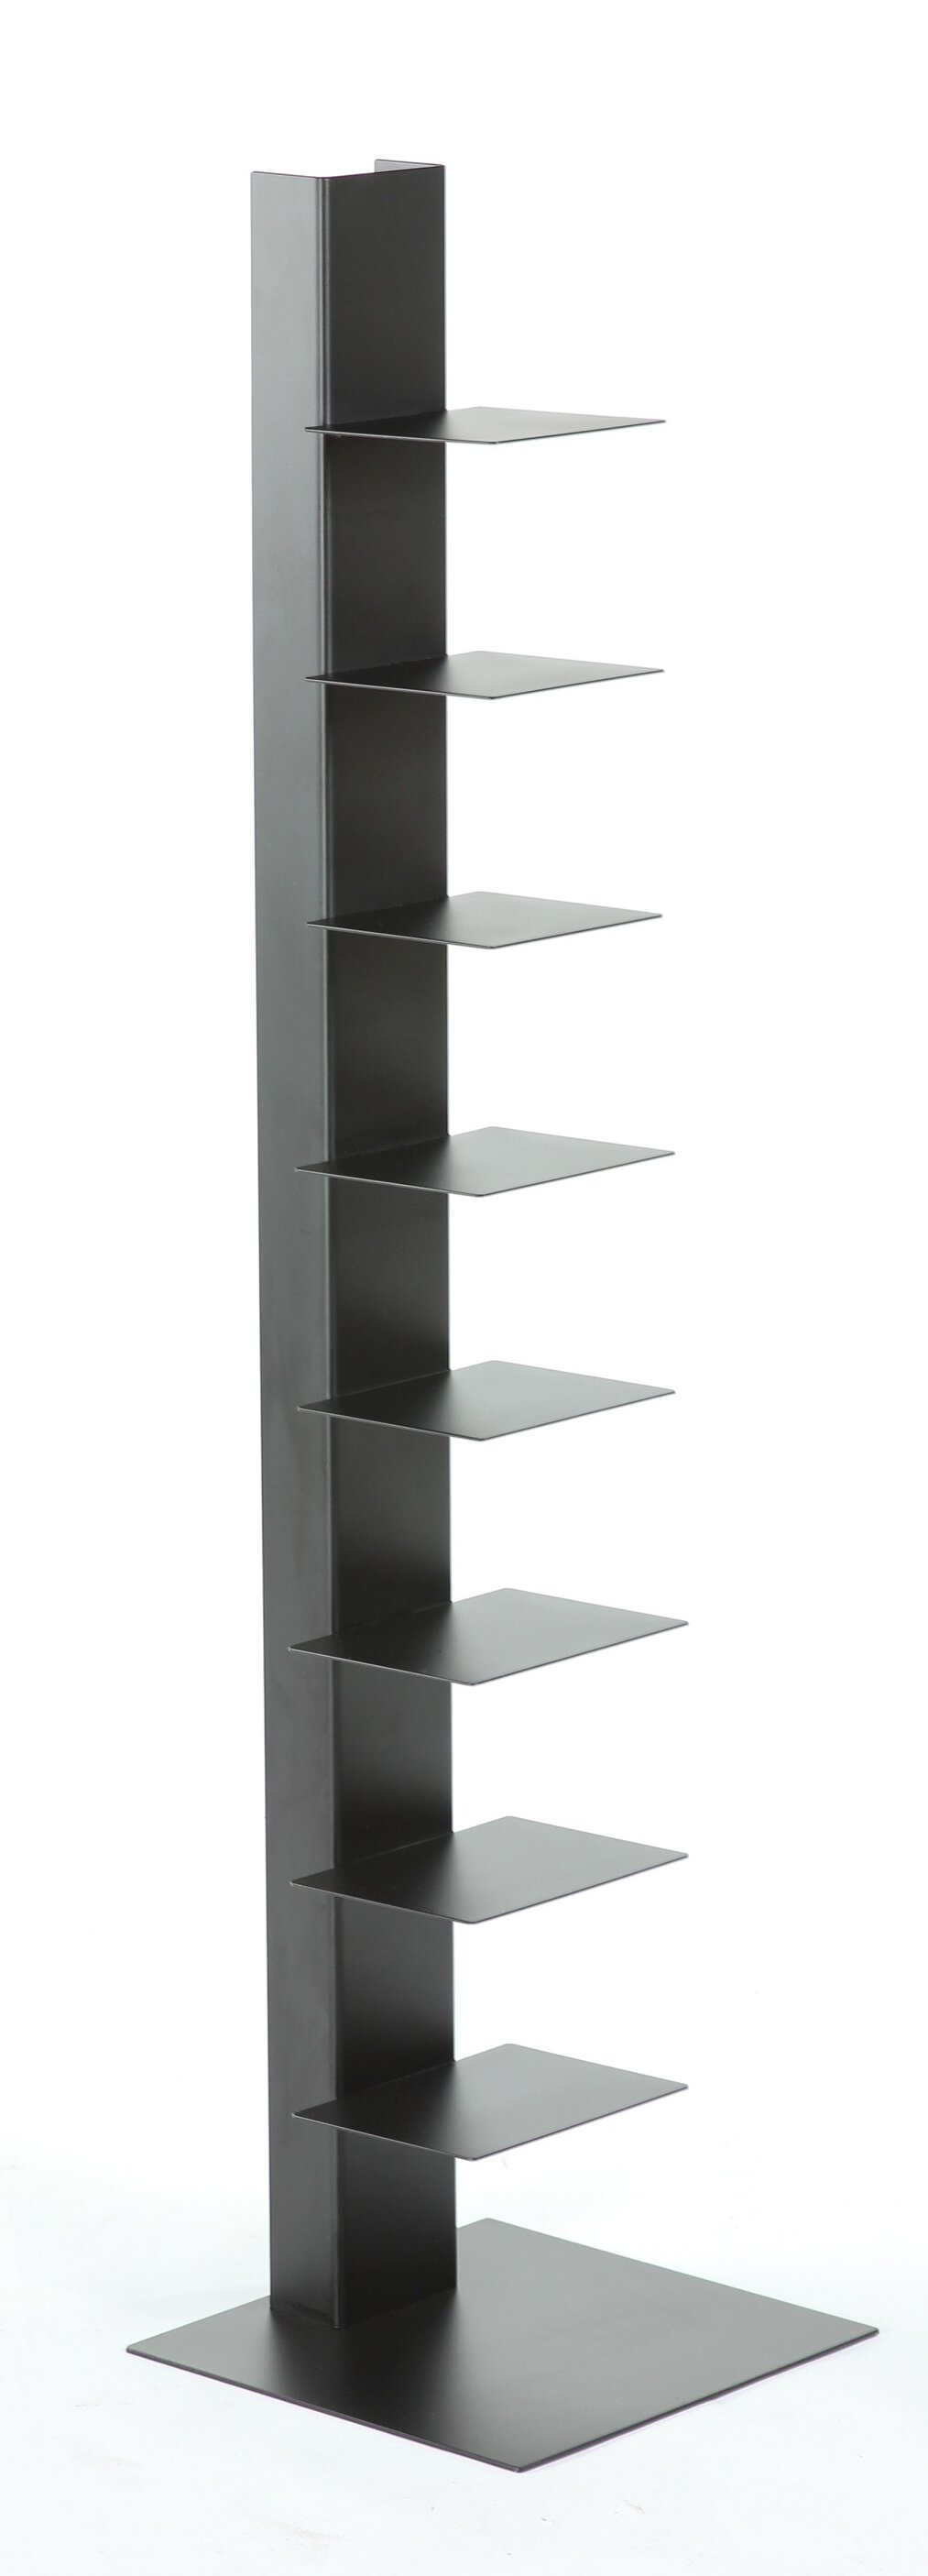 bookshelf bruno pi home sapien and blog look rainaldi bookcase vertical tall for low spine less dwr the original cost